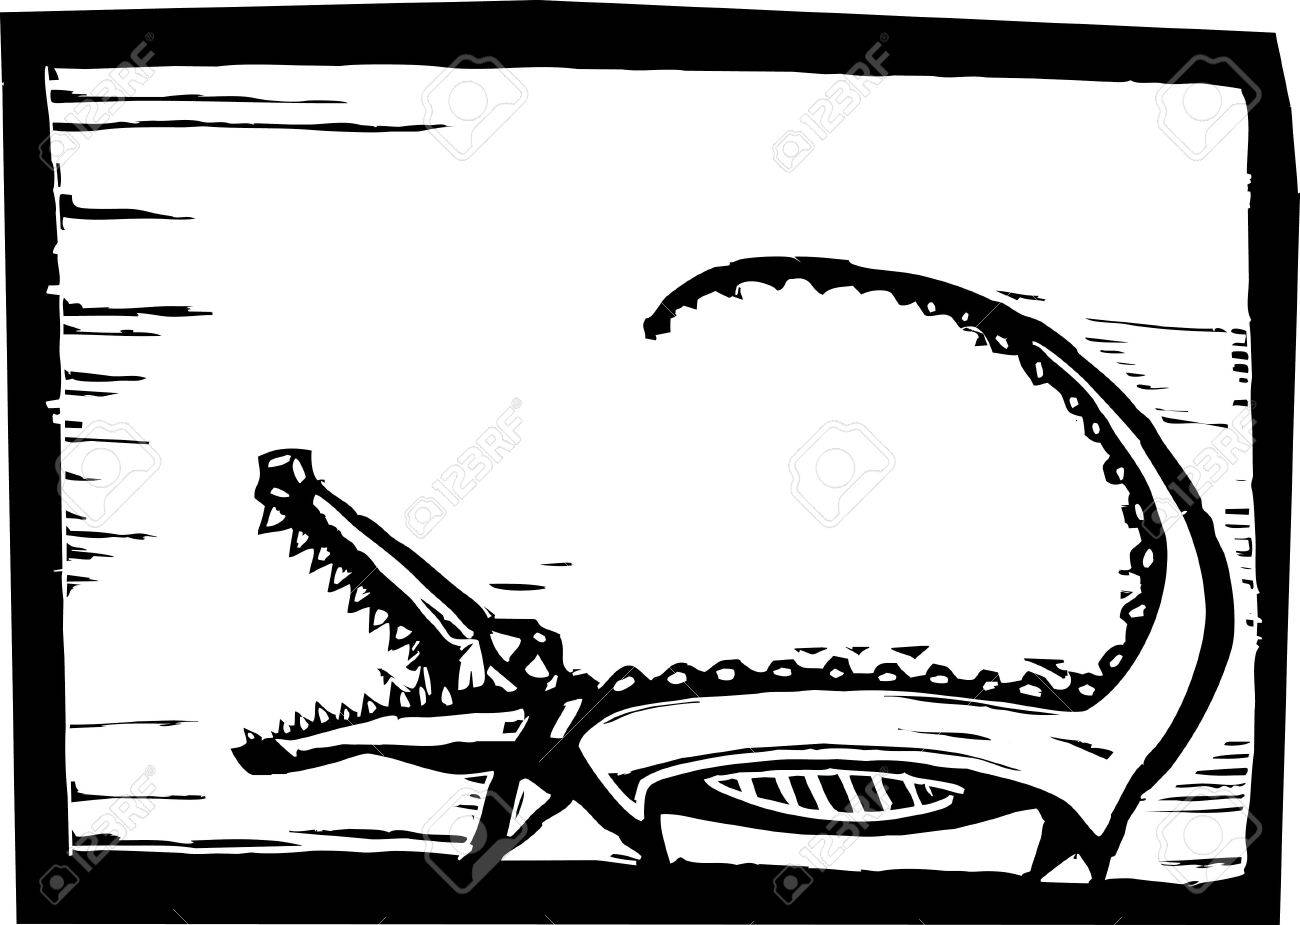 African crocodile in woodcut style in border. Stock Vector - 6835293